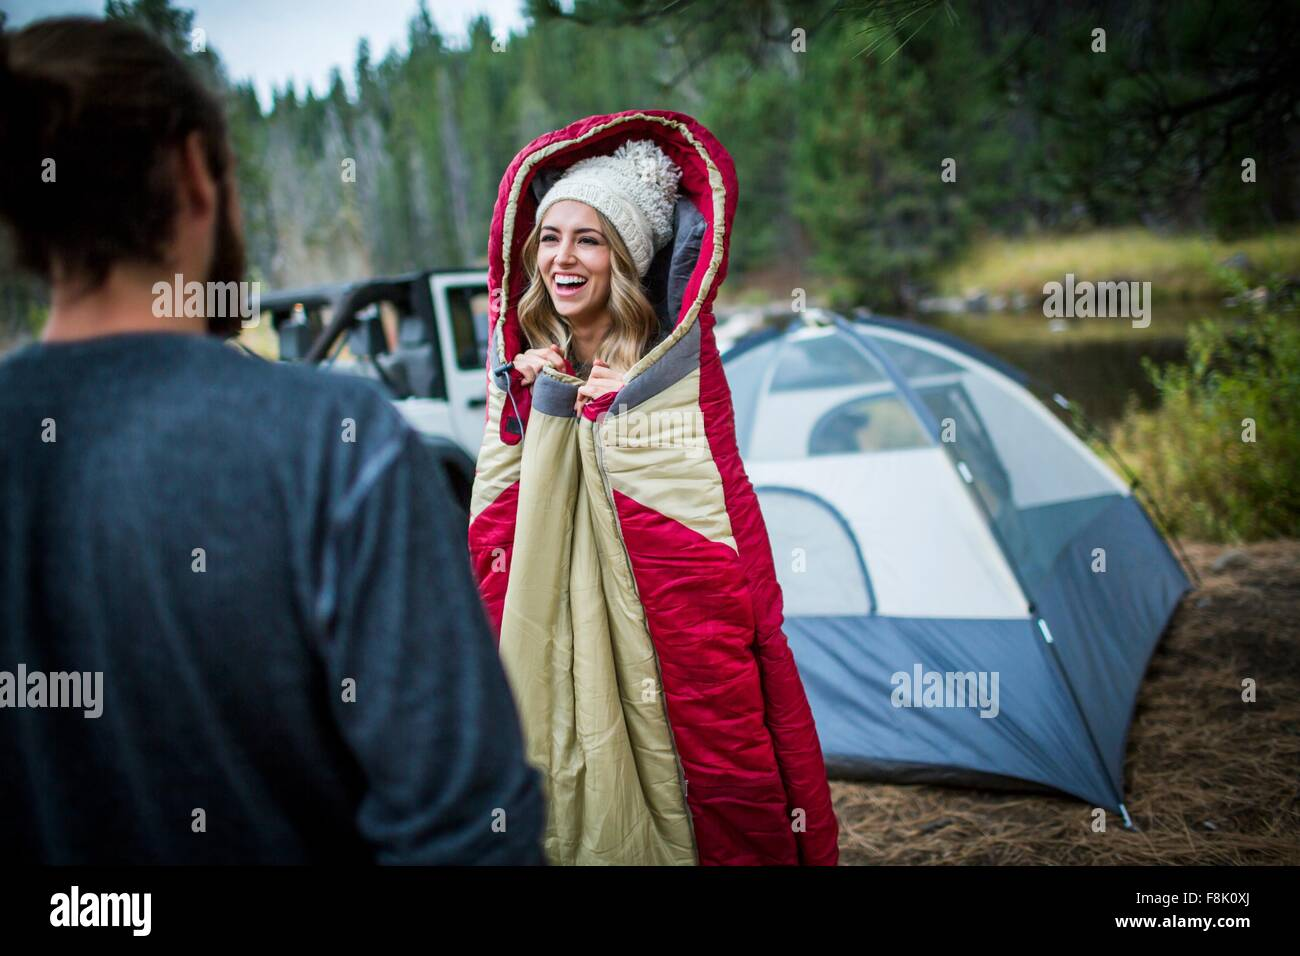 Young woman wearing knit hat wrapped in sleeping bag, Lake Tahoe, Nevada, USA - Stock Image